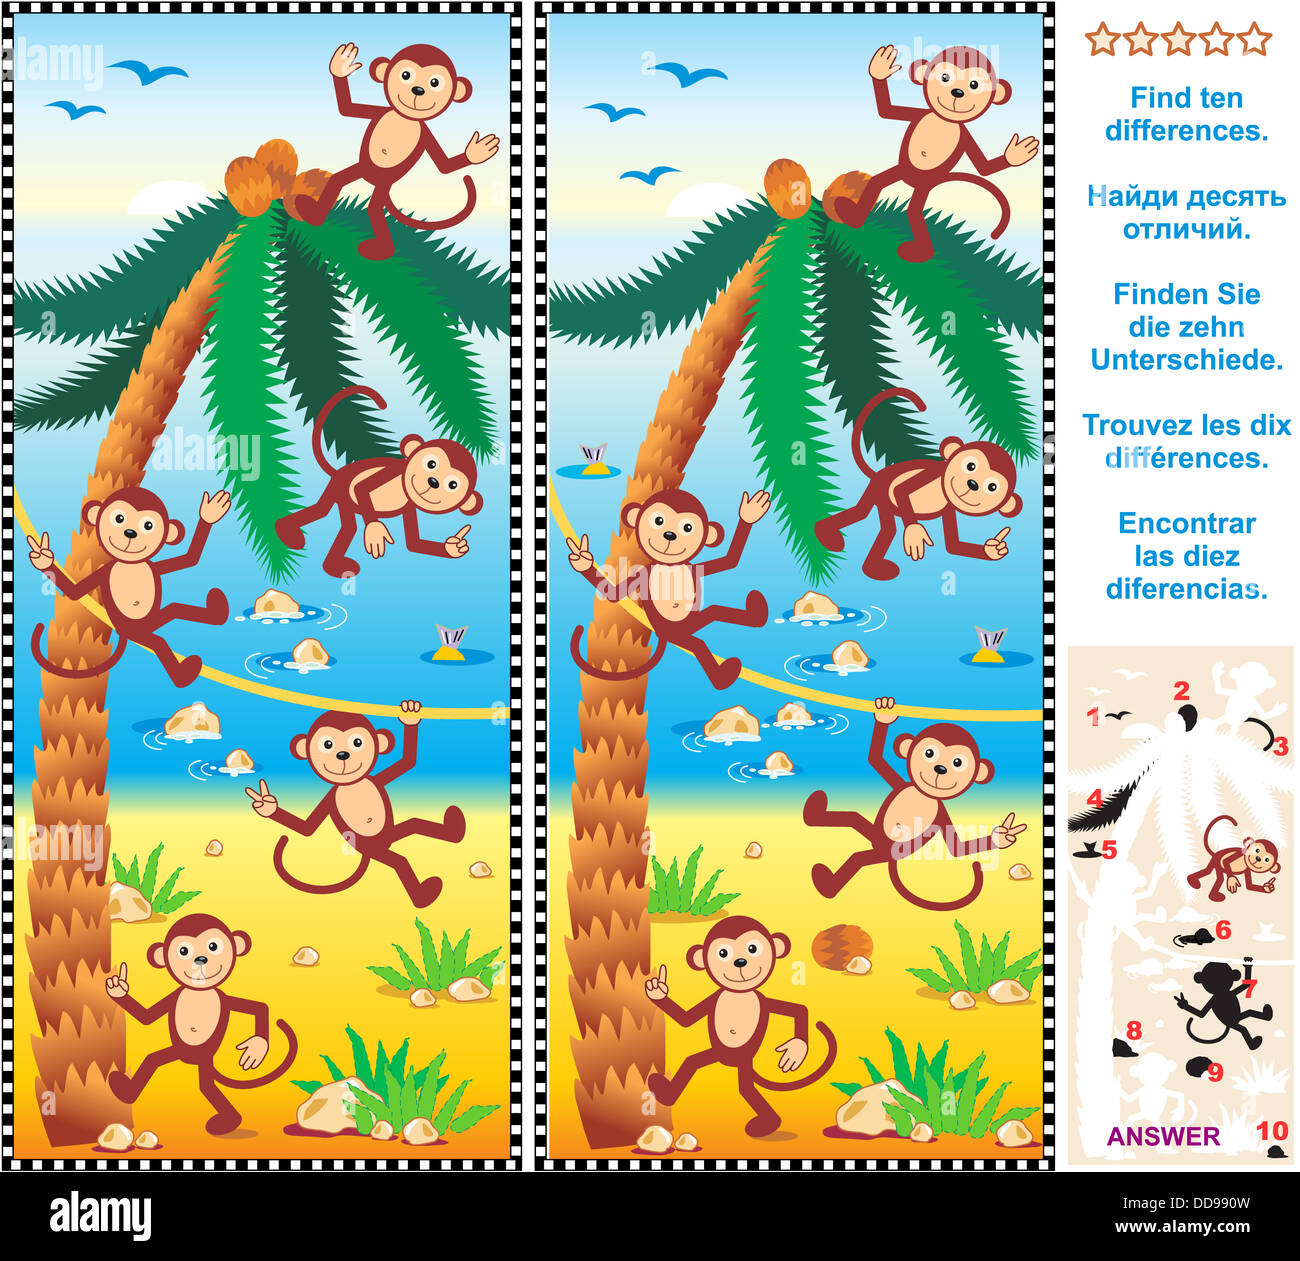 Visual Puzzle Find The Ten Differences Between The Two Pictures Stock Photo